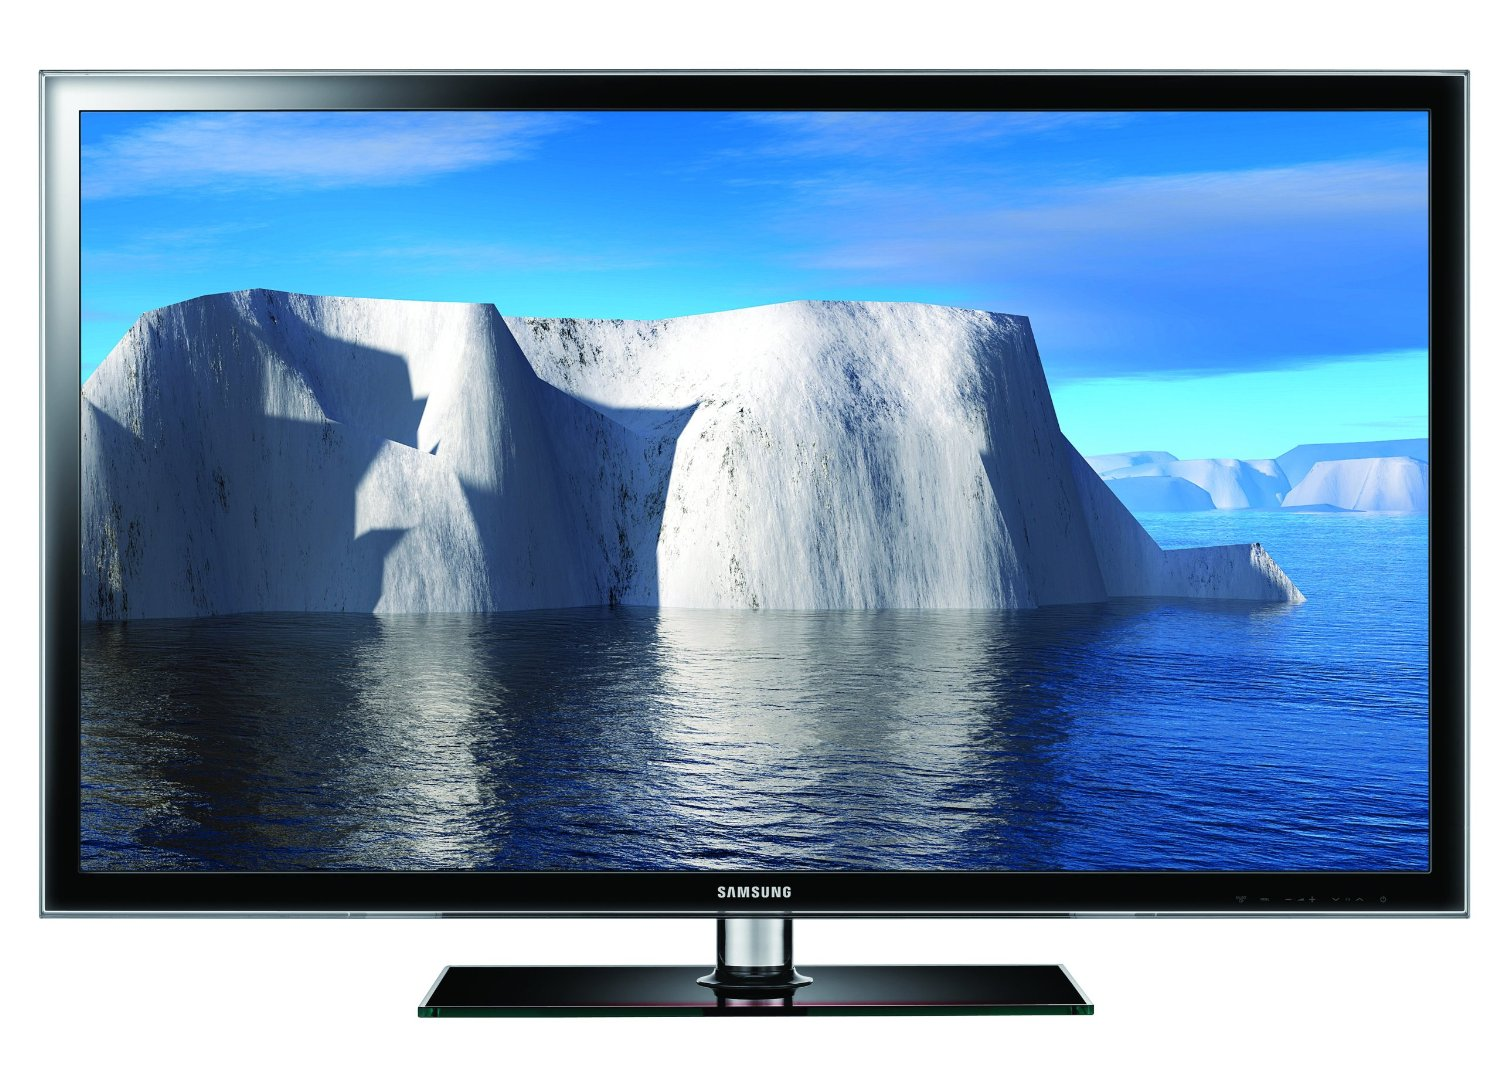 samsung ue40f5000 40 led widescreen tv full hd 1080p built in freeview black ebay. Black Bedroom Furniture Sets. Home Design Ideas